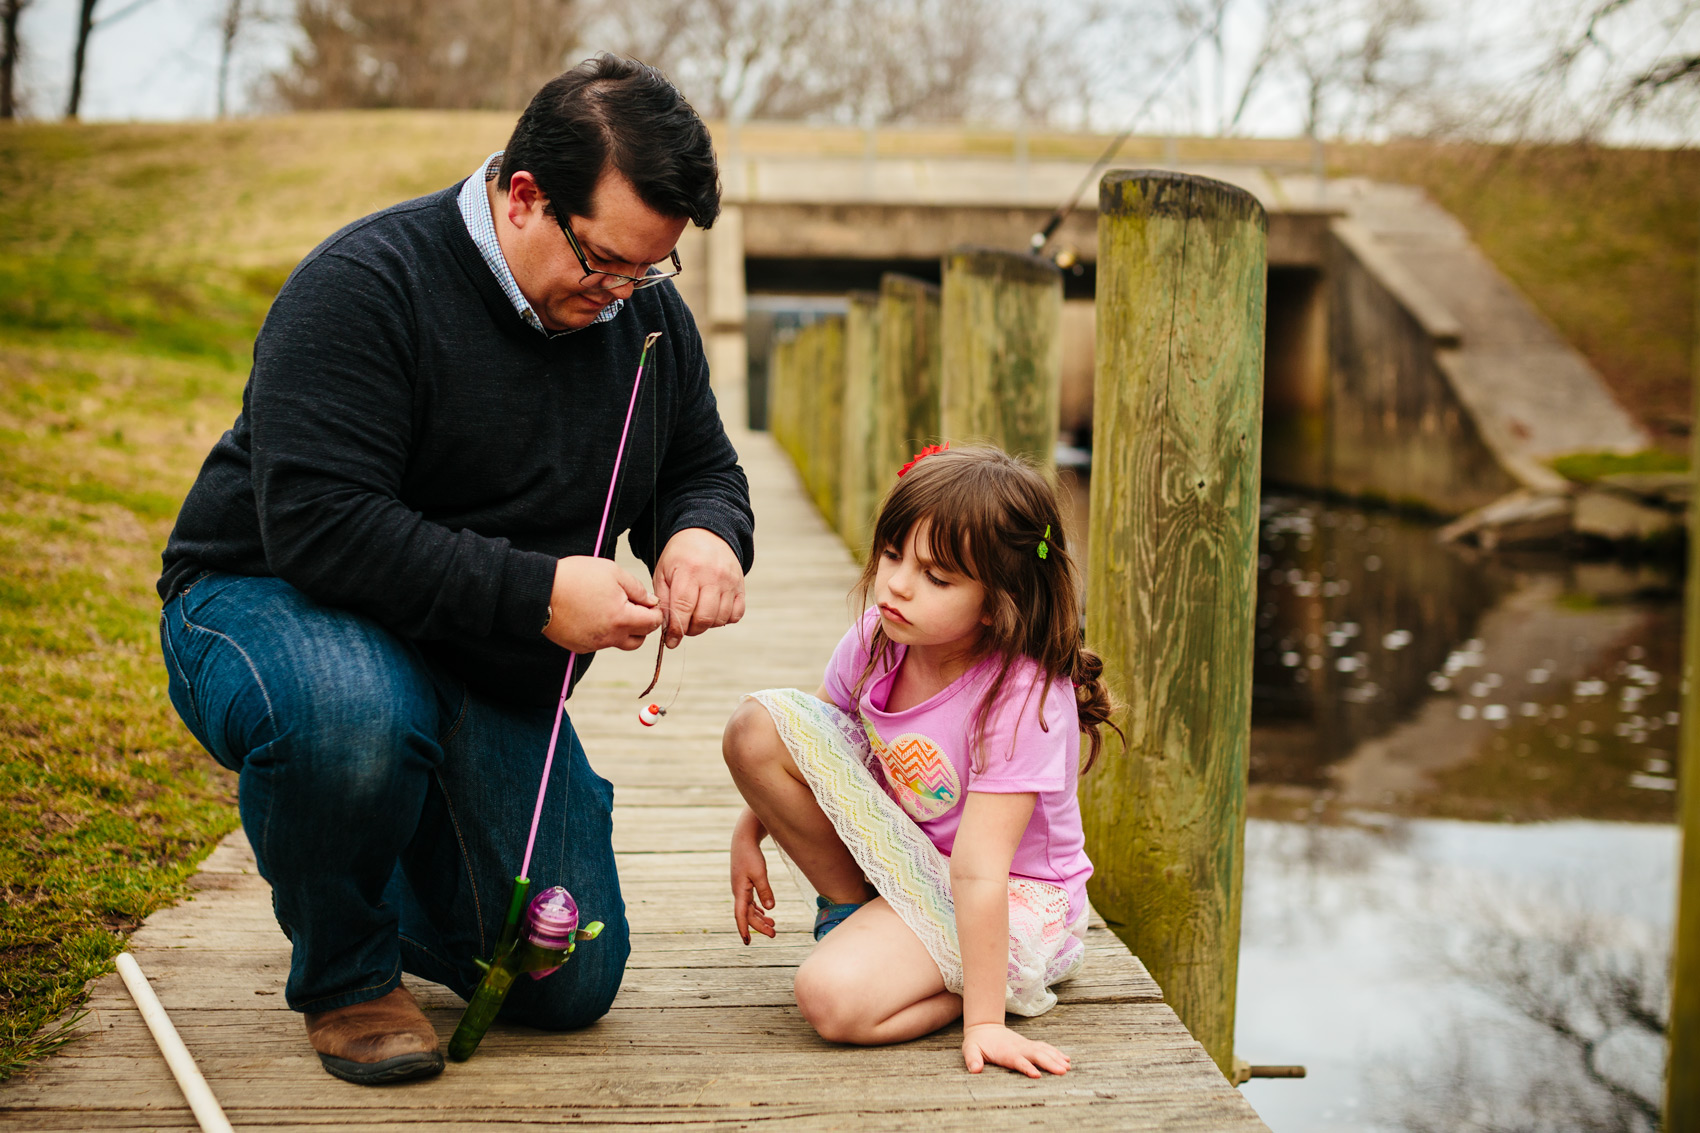 father hooking fish with daughter on dock, washington dc commercial photography